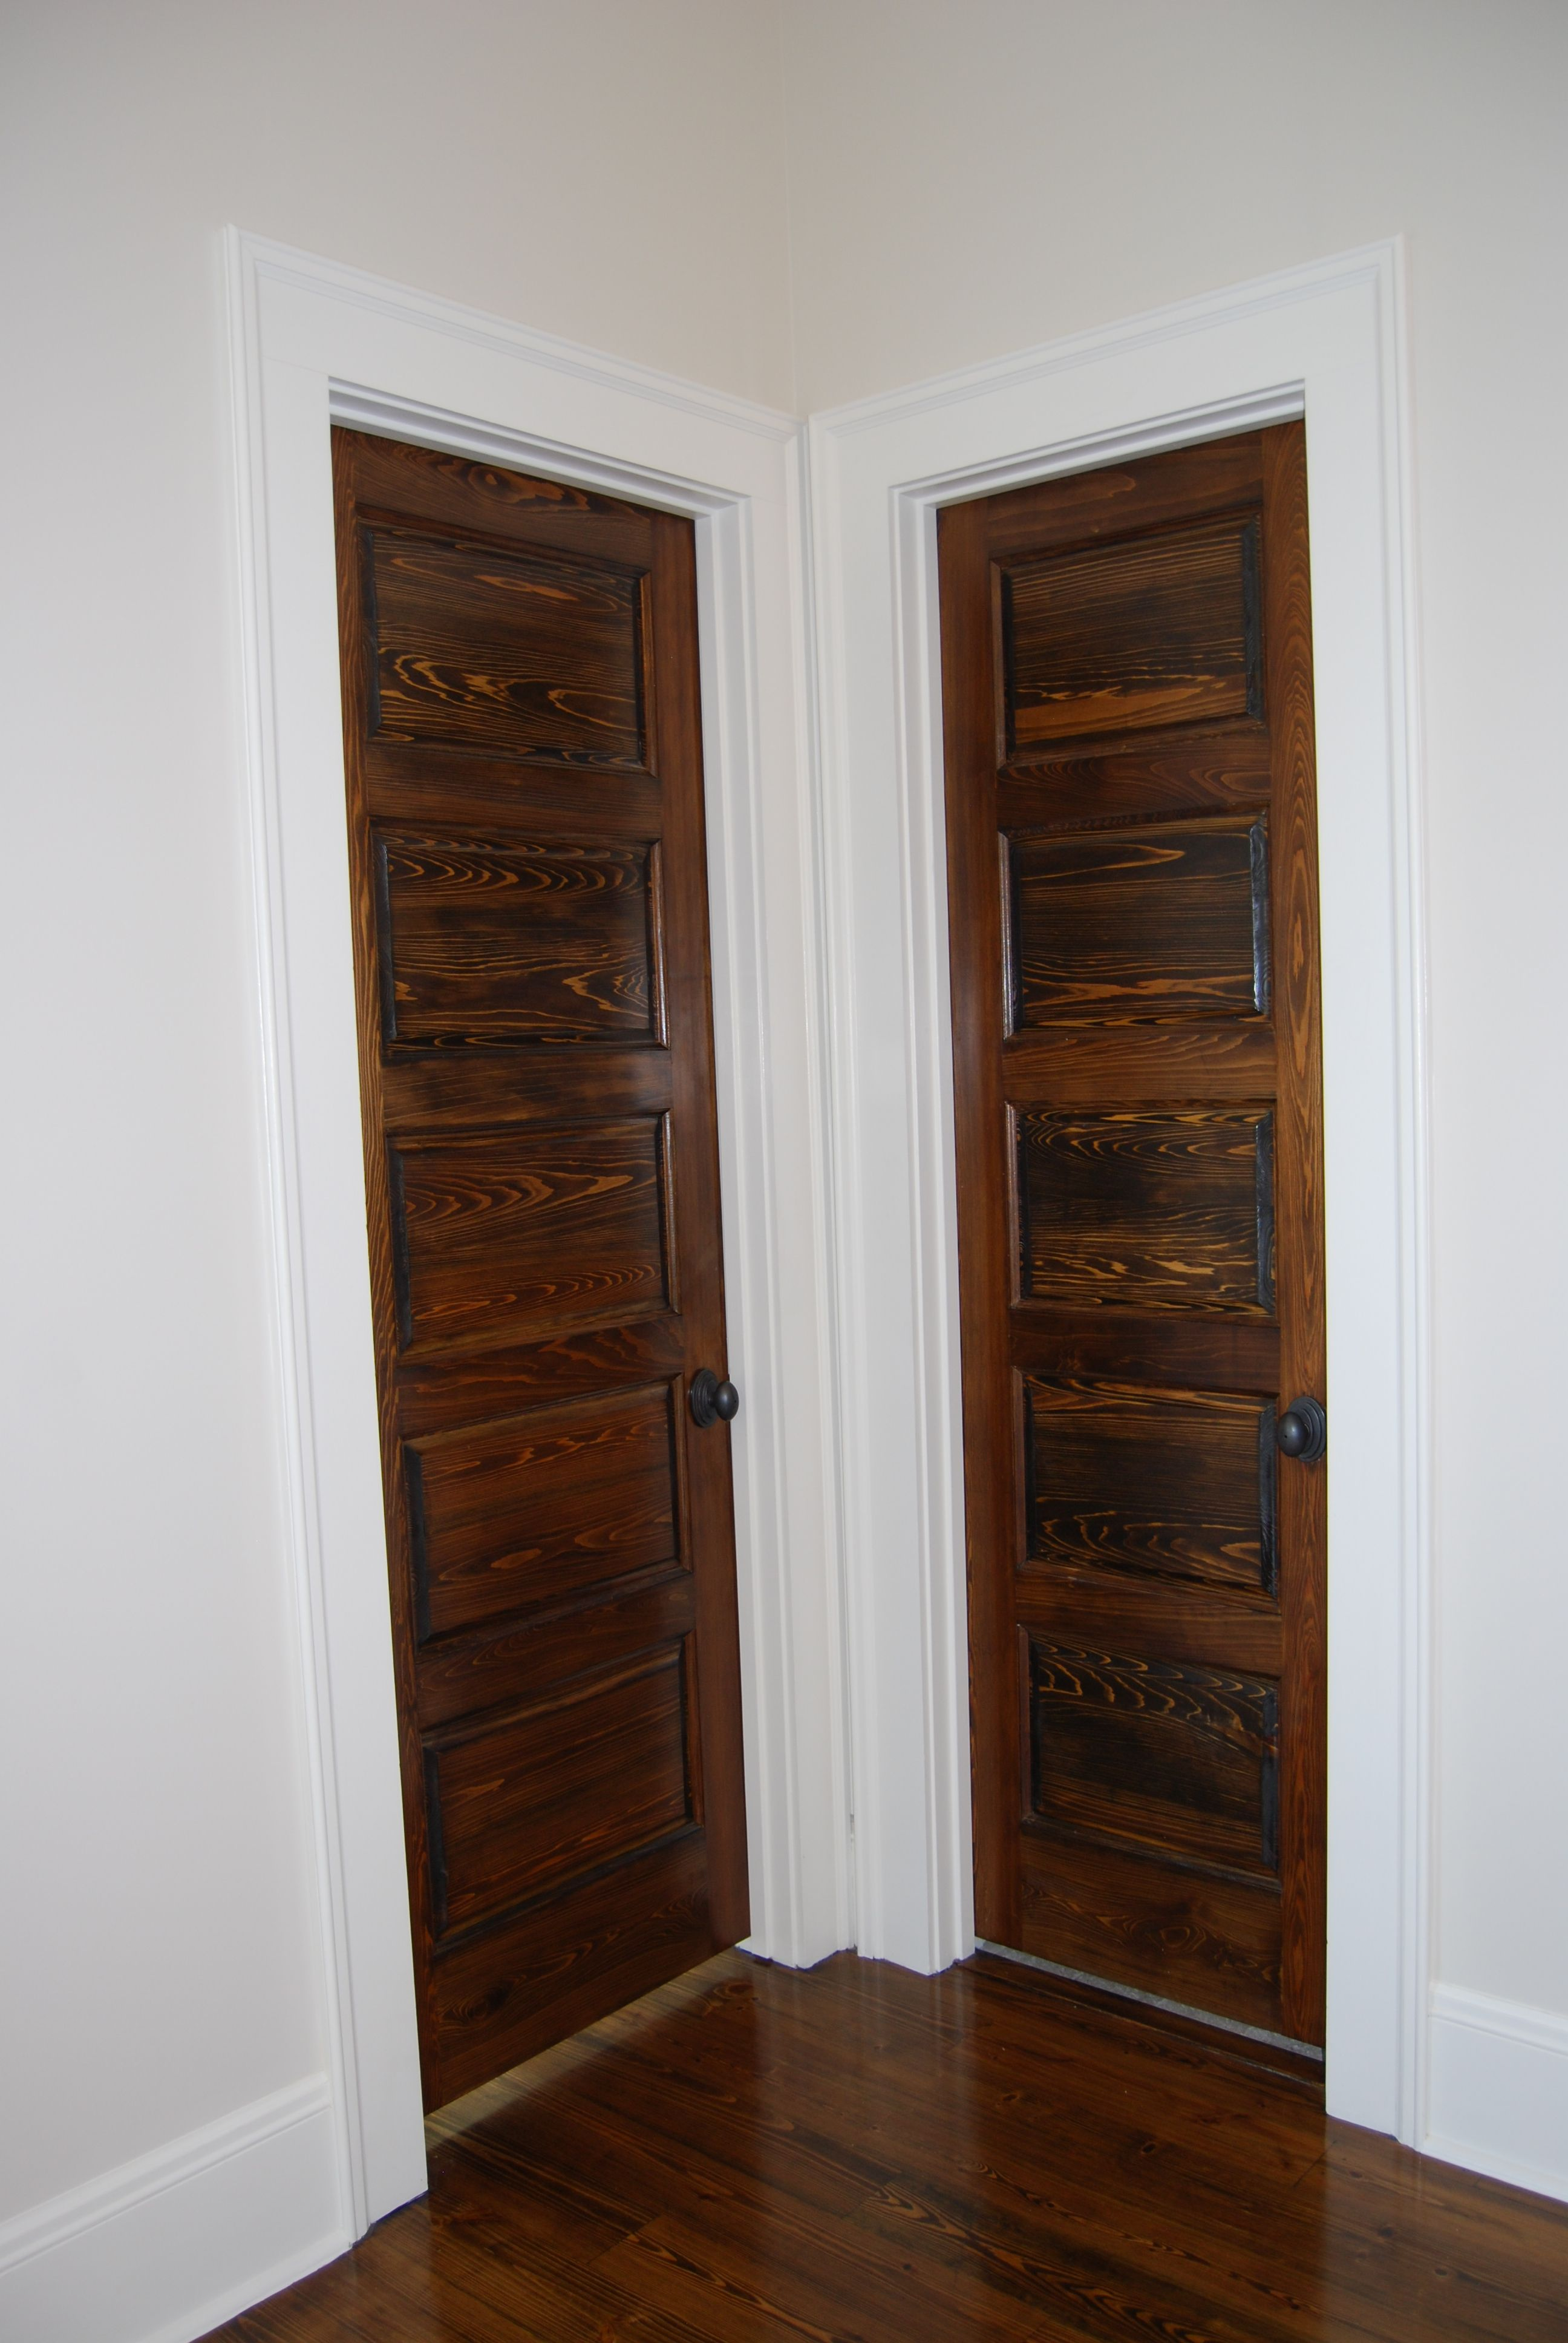 5 panel wood interior doors. Stained 5-panel Wood Doors With White Trim And Black Hardware 5 Panel Interior D